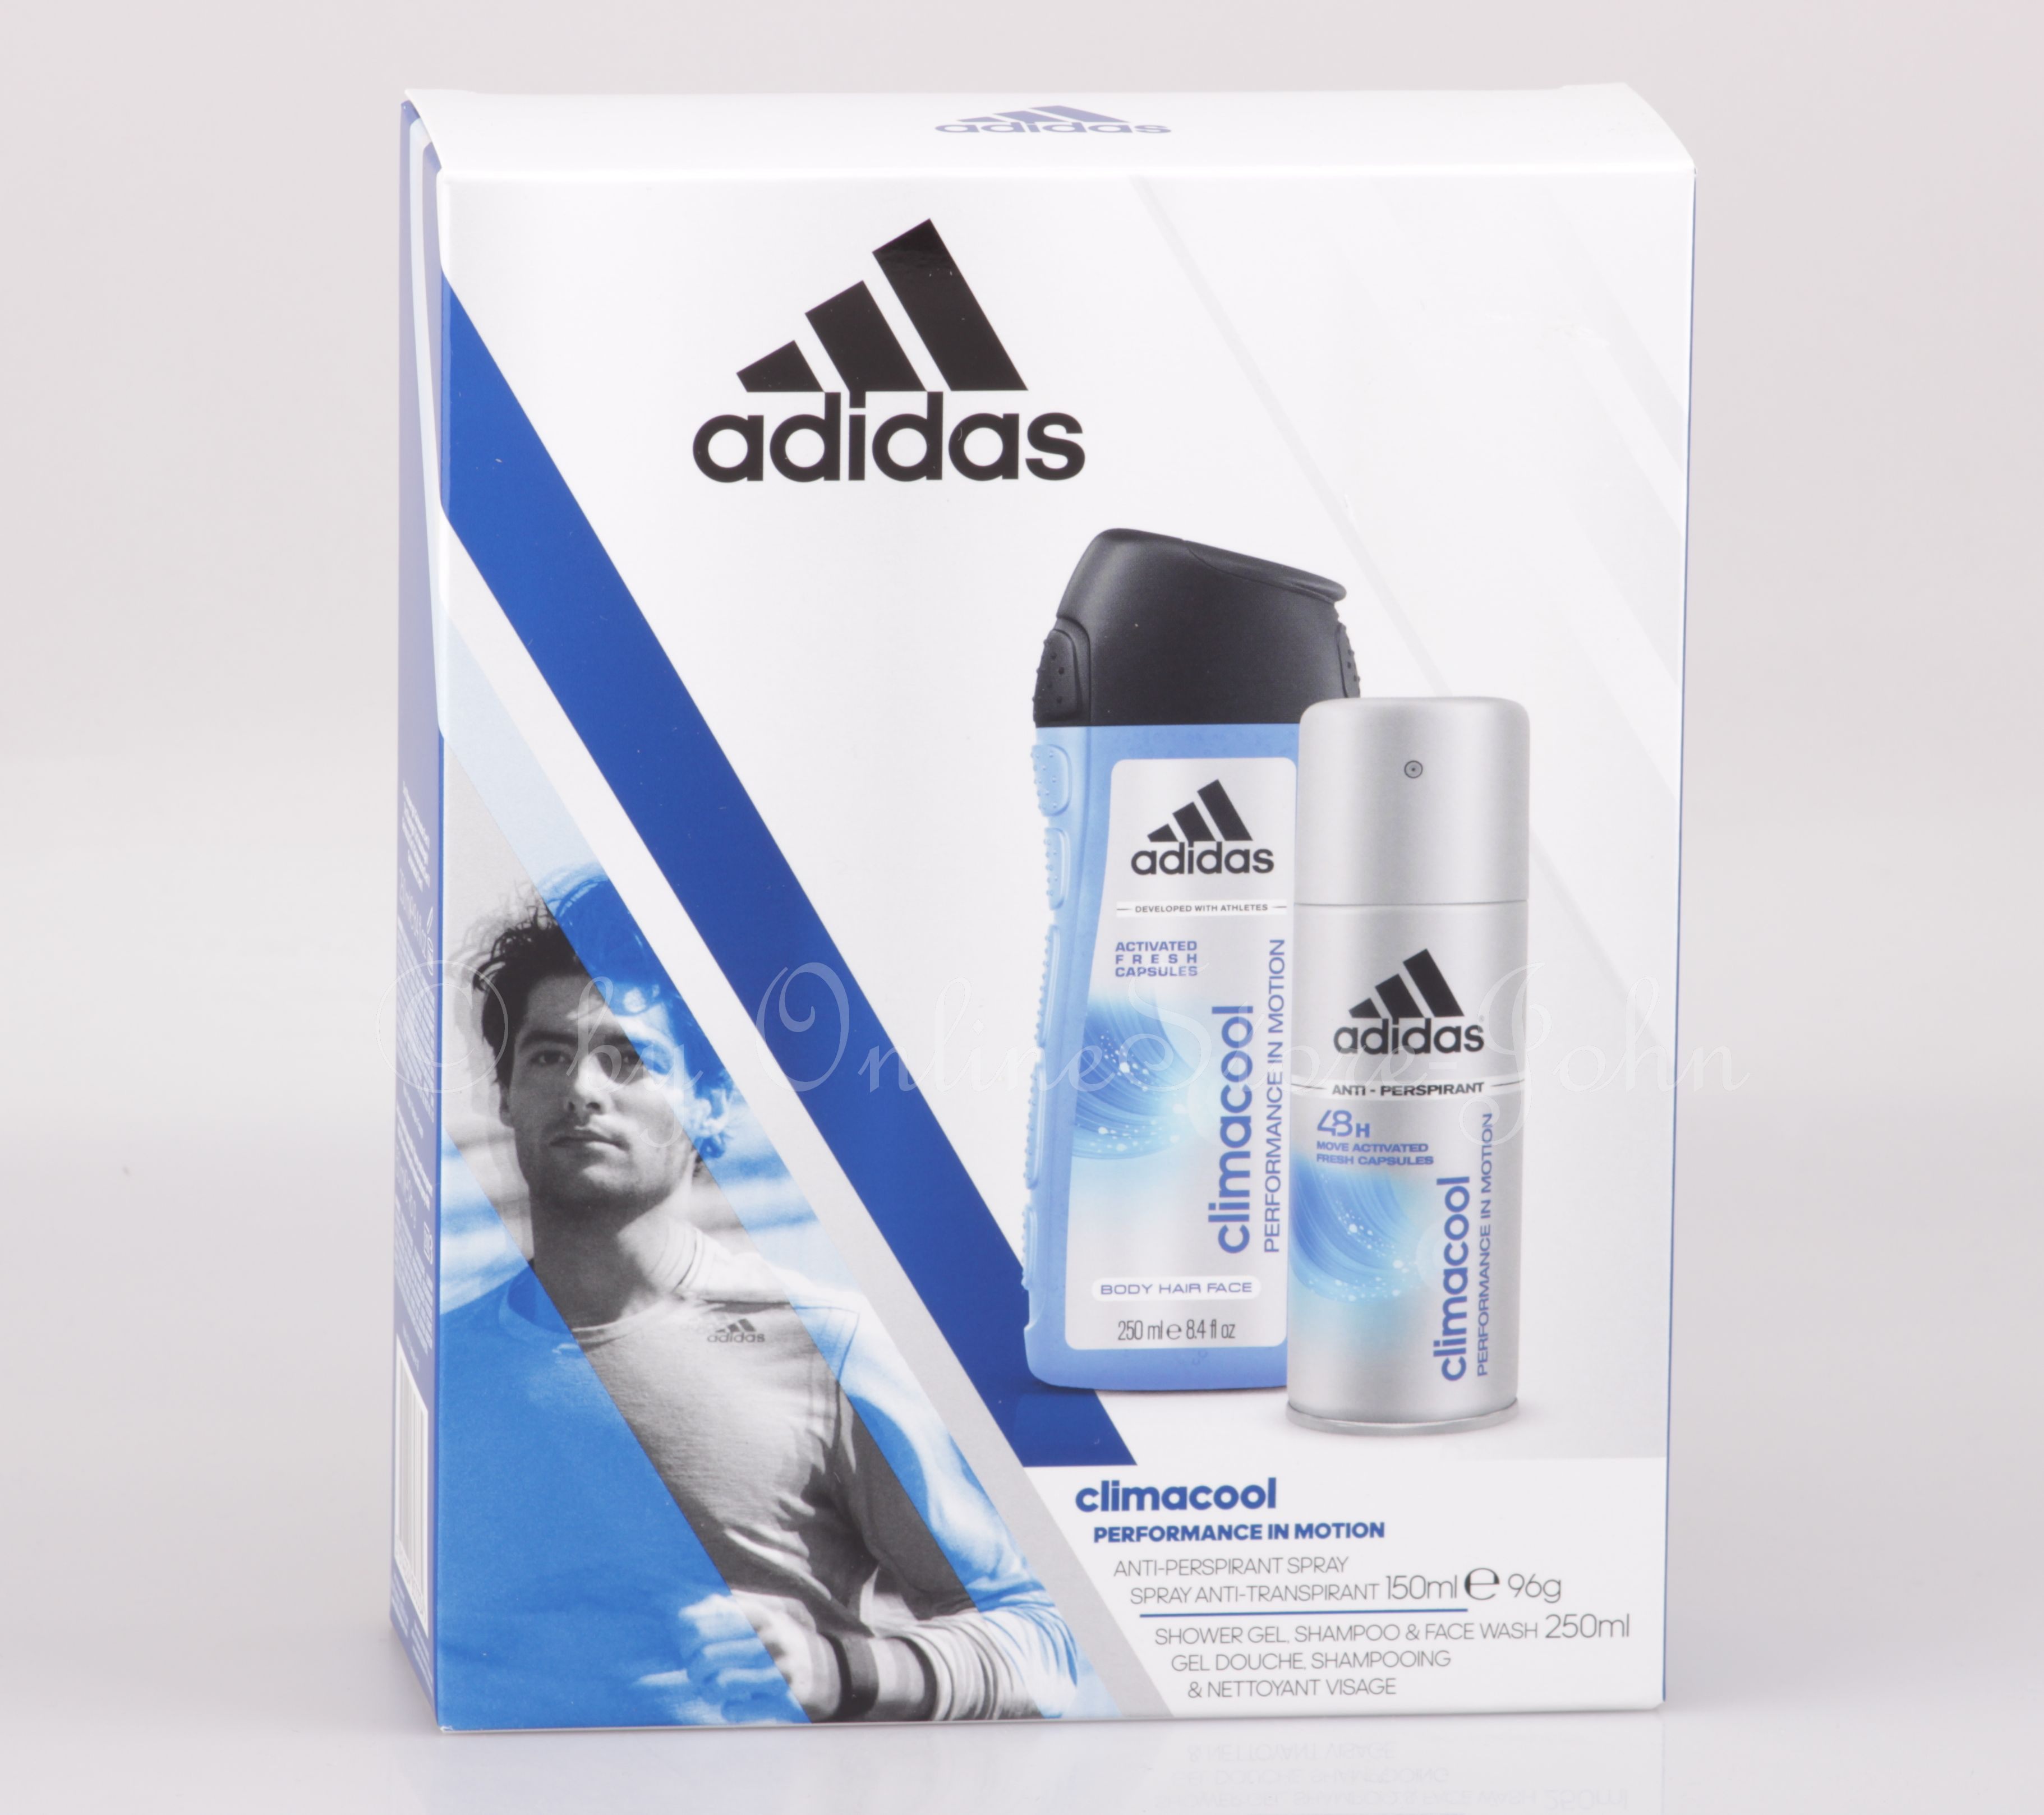 2018 shoes shopping how to buy Adidas - Climacool Set -150ml 48h Deo-Spray + 250ml Body Shower Gel